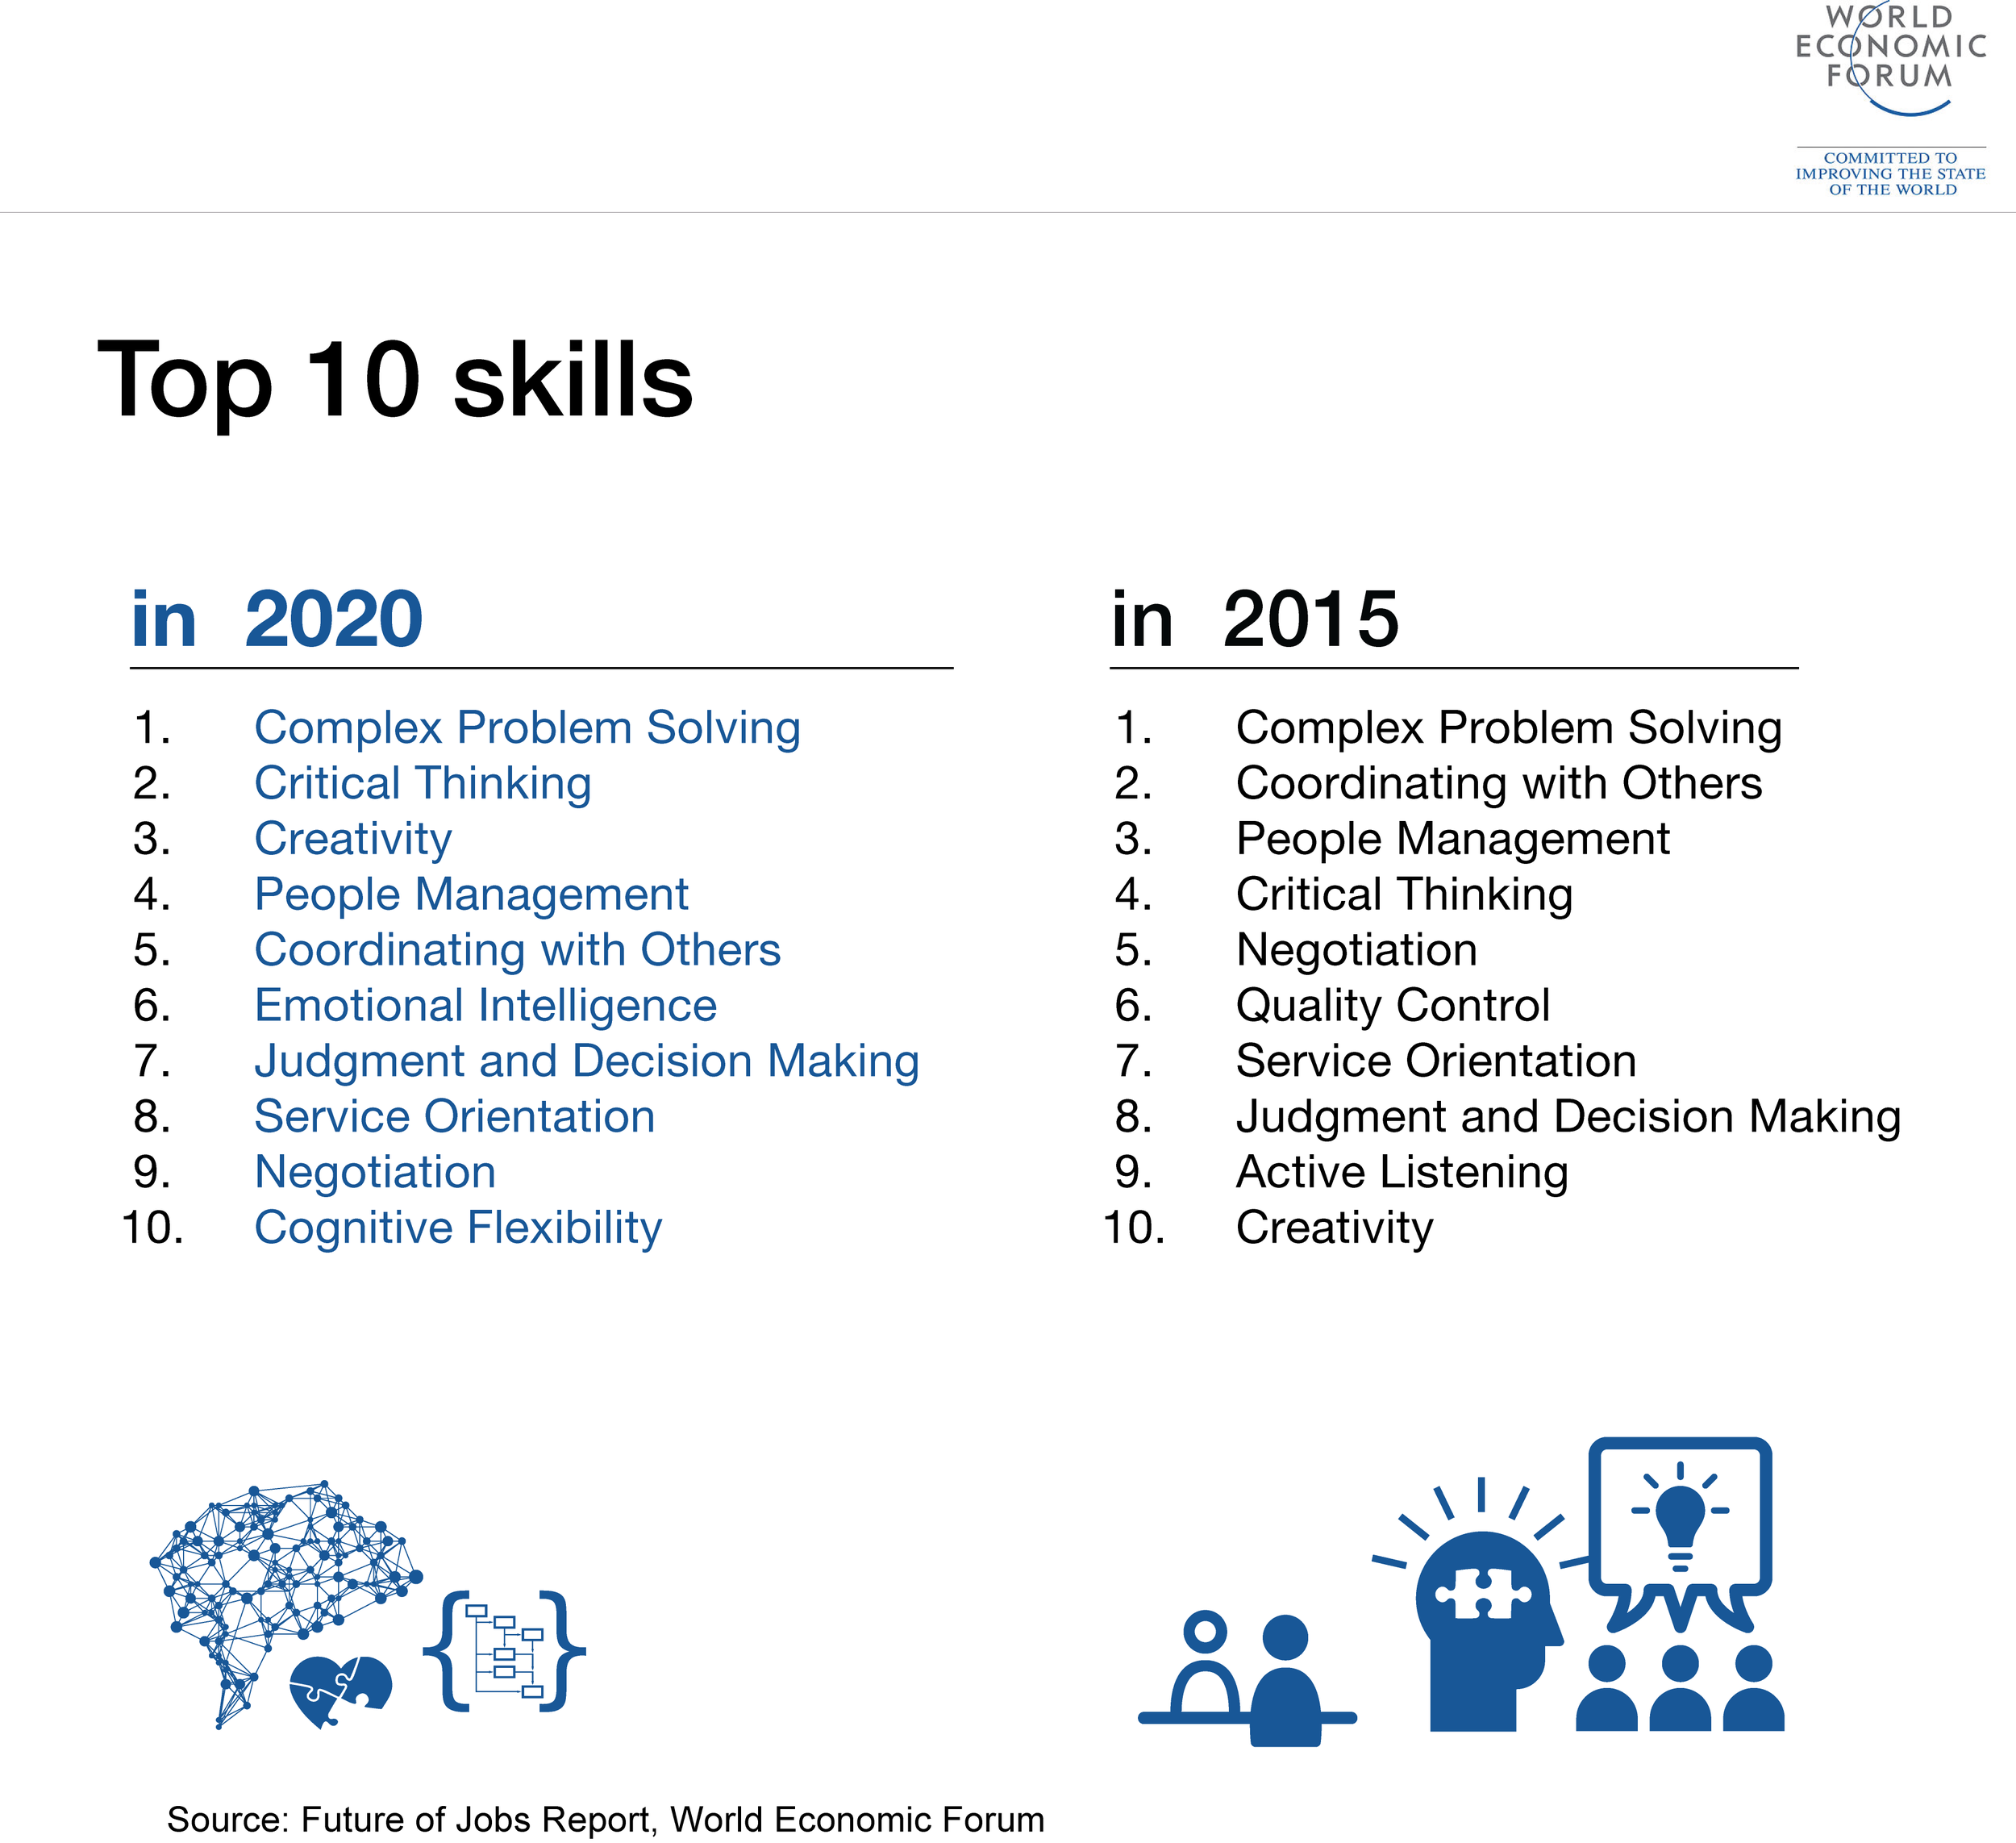 Future_of_Jobs_Top_10_Skills_World_Ecoomic_Development_Forum.png